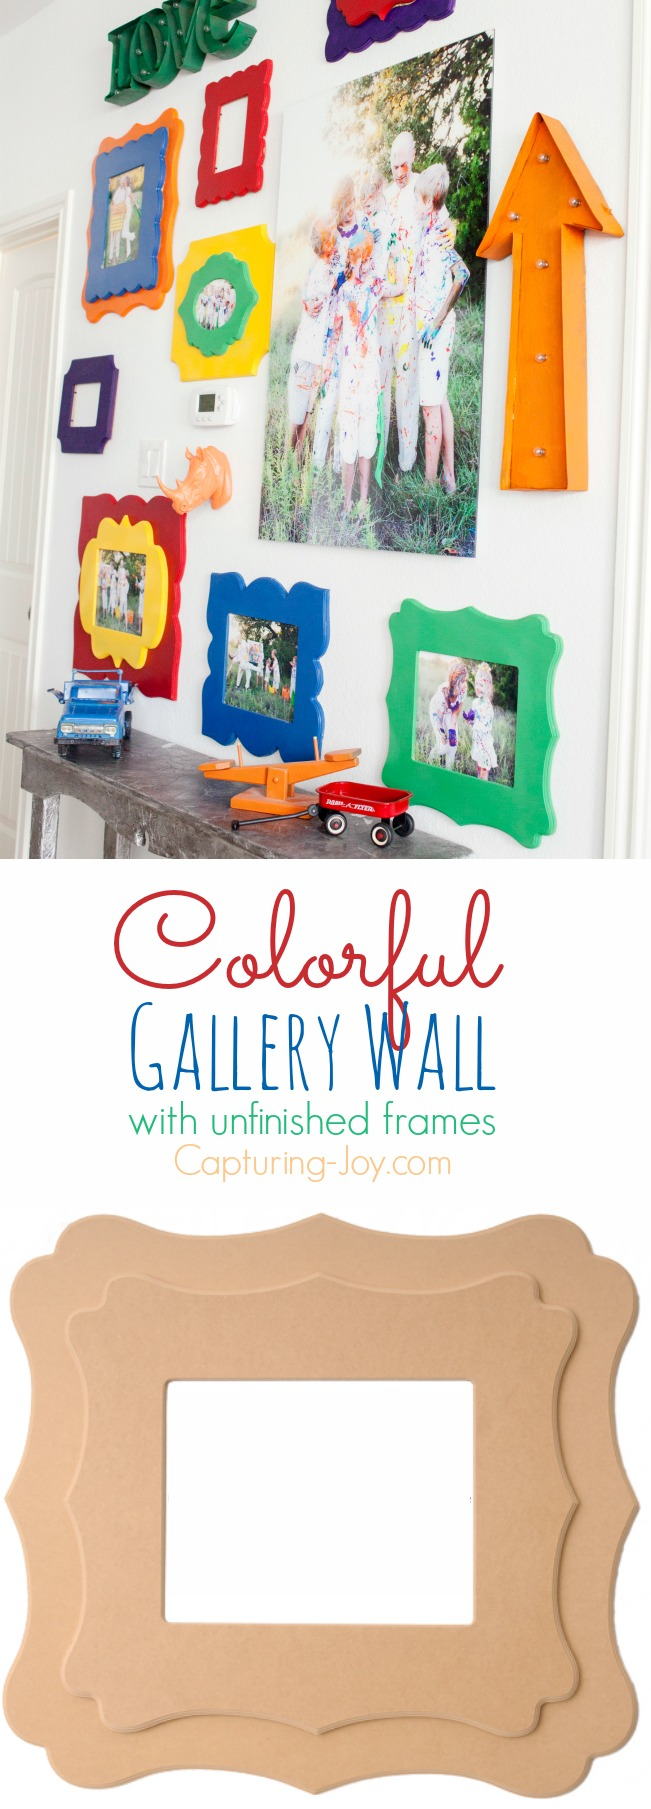 Colorful-Gallery-Wall-with-Unfinished-Frames